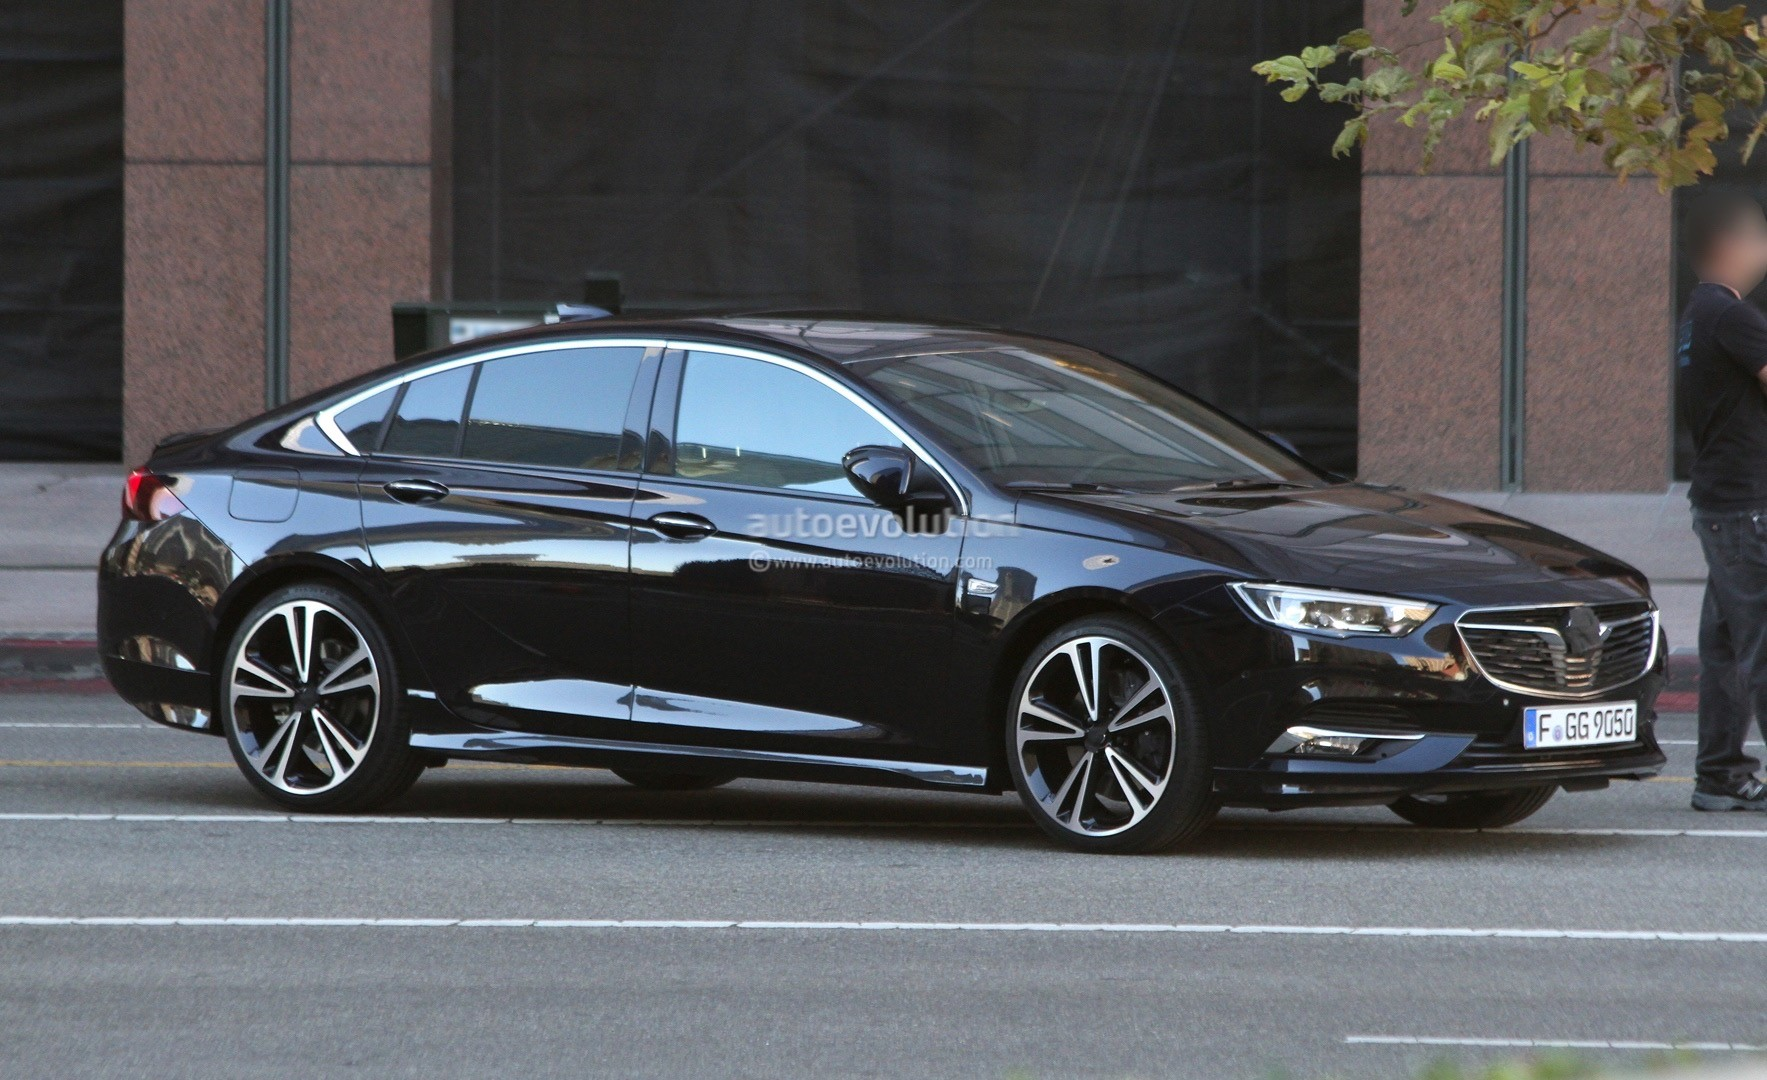 2017 Opel Insignia Price Starts From EUR 25,940 For The Sedan, Wagon ...